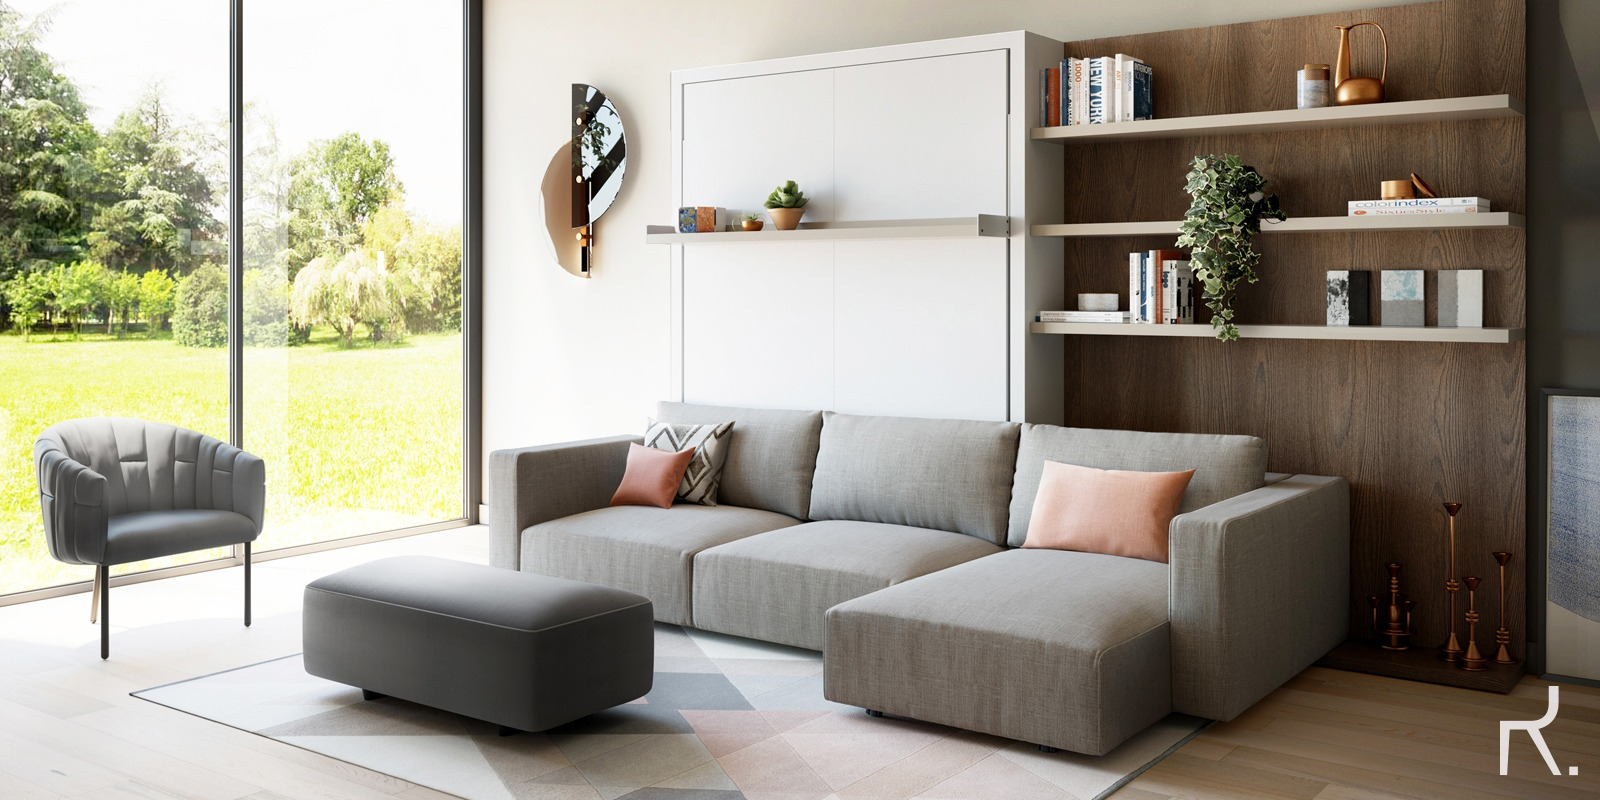 Resource Furniture Space Saving Furniture Designed Differently